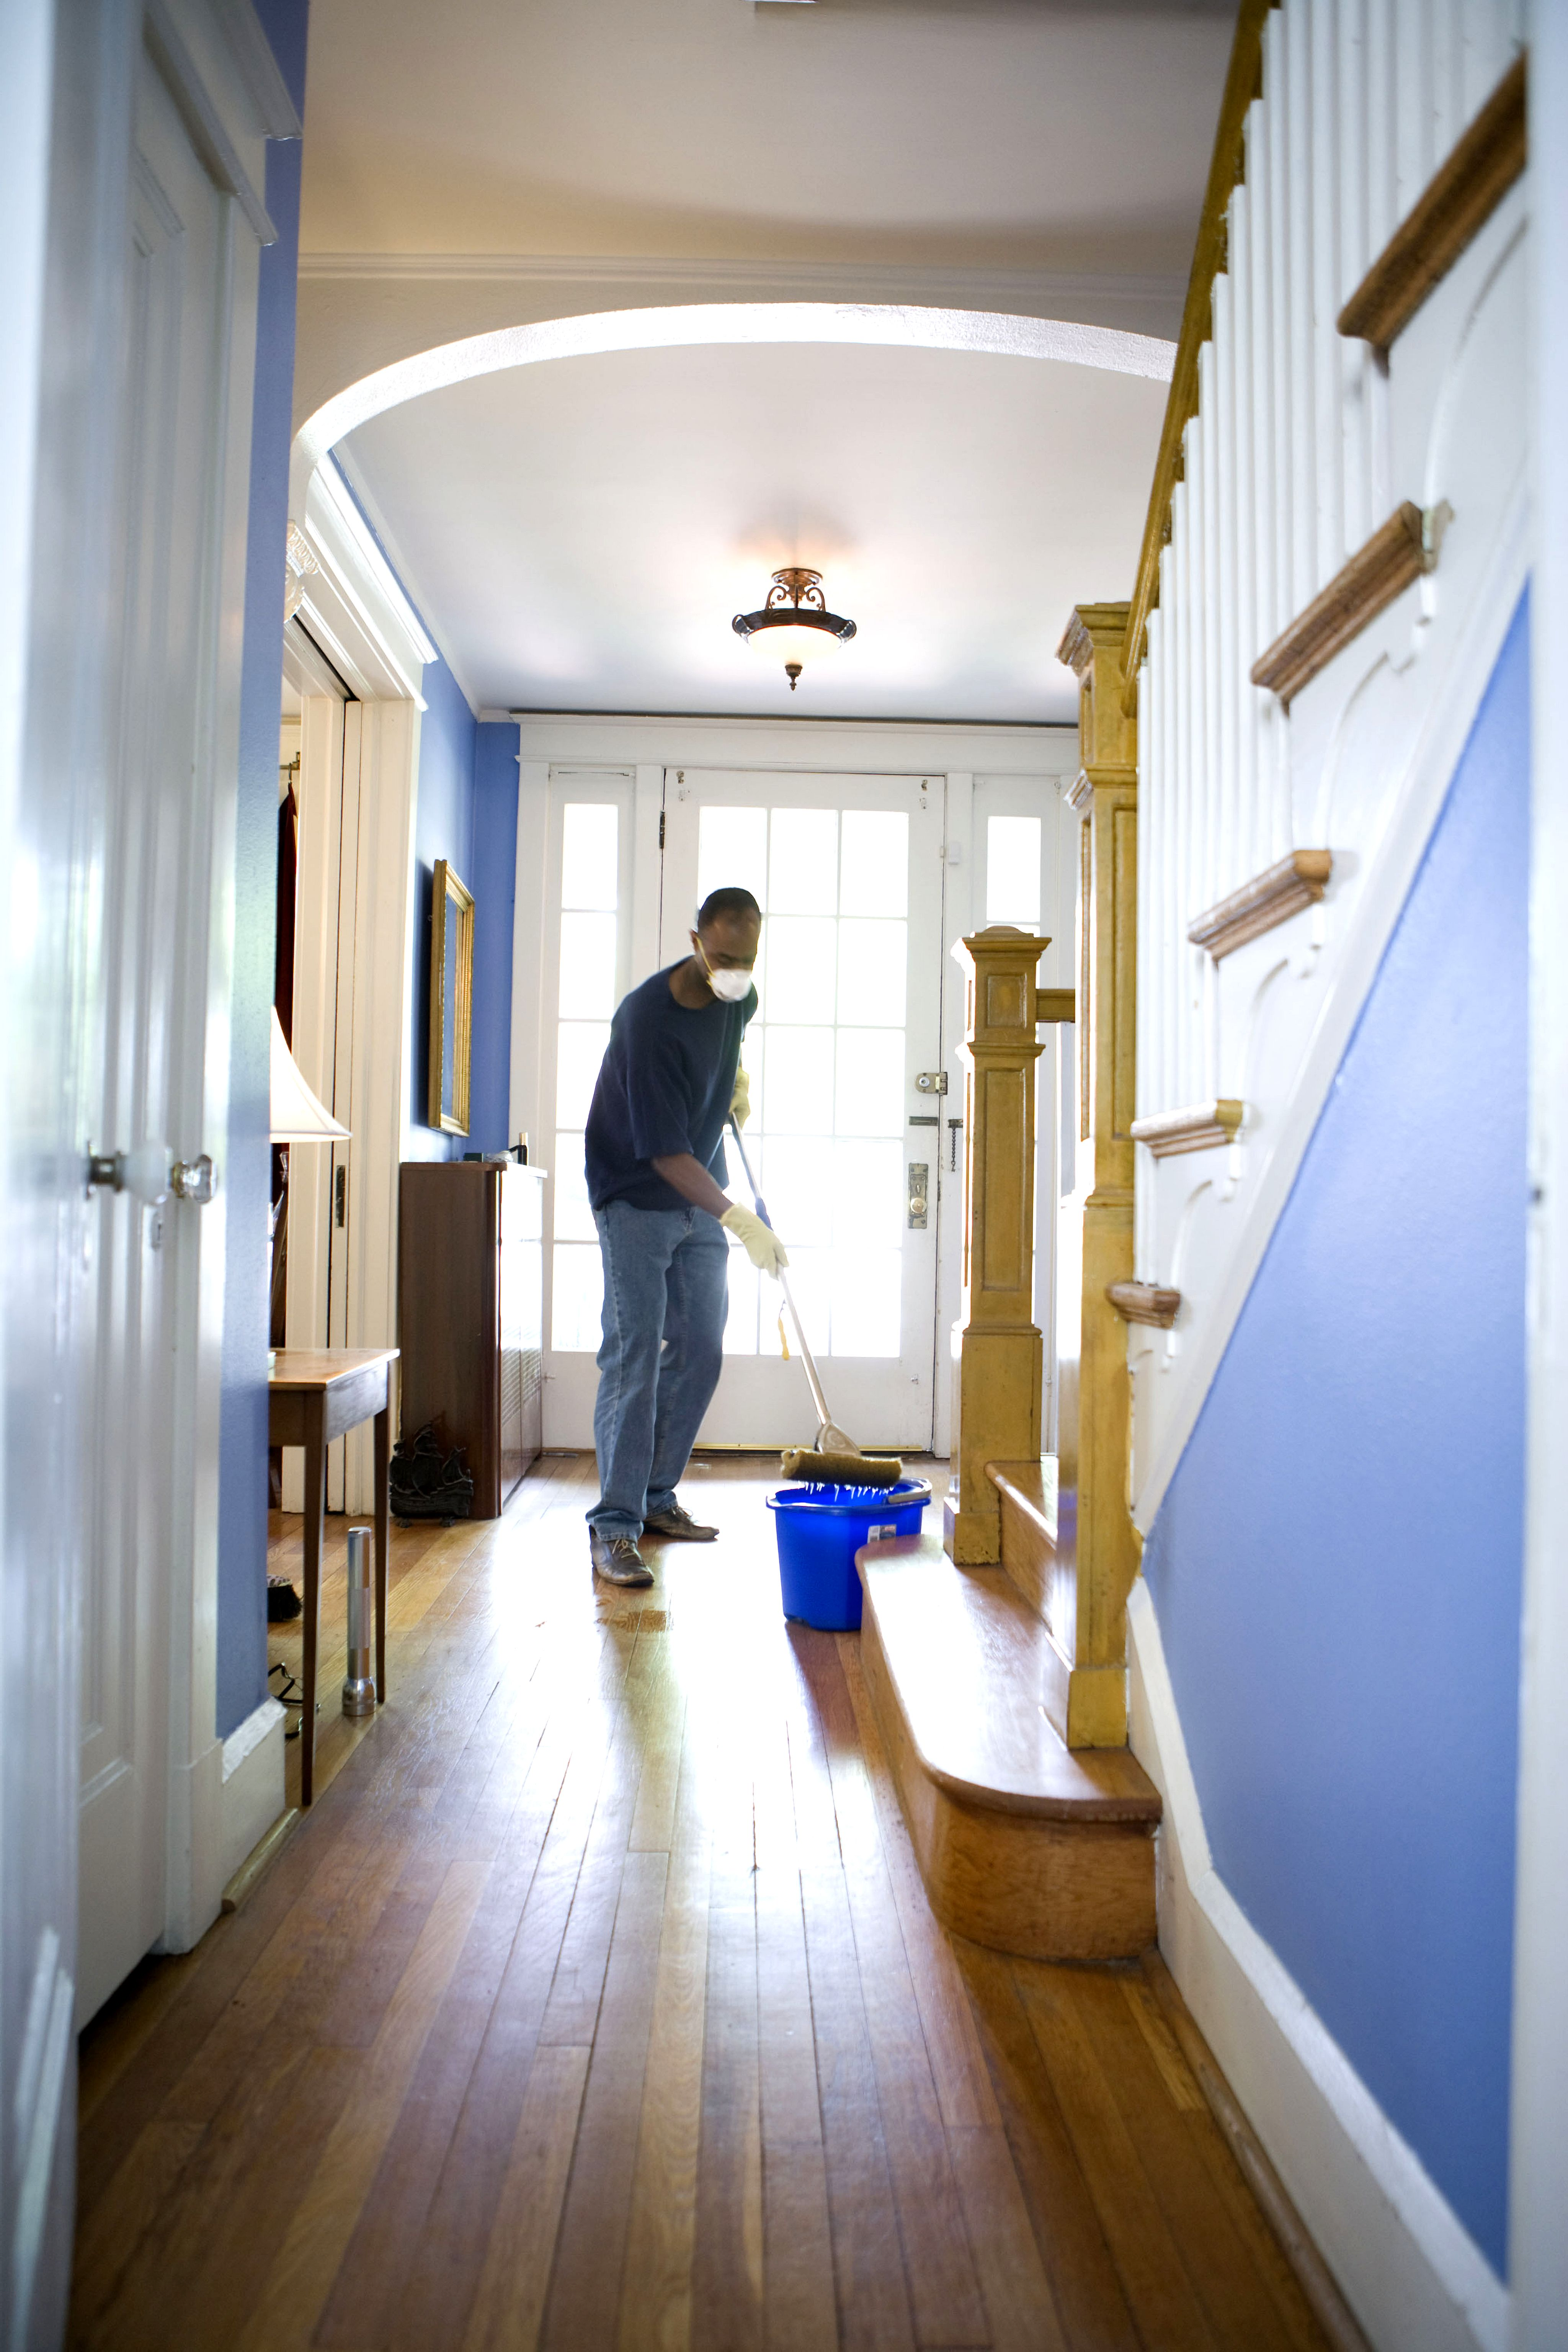 free picture  african american  man  damp  mop  clean